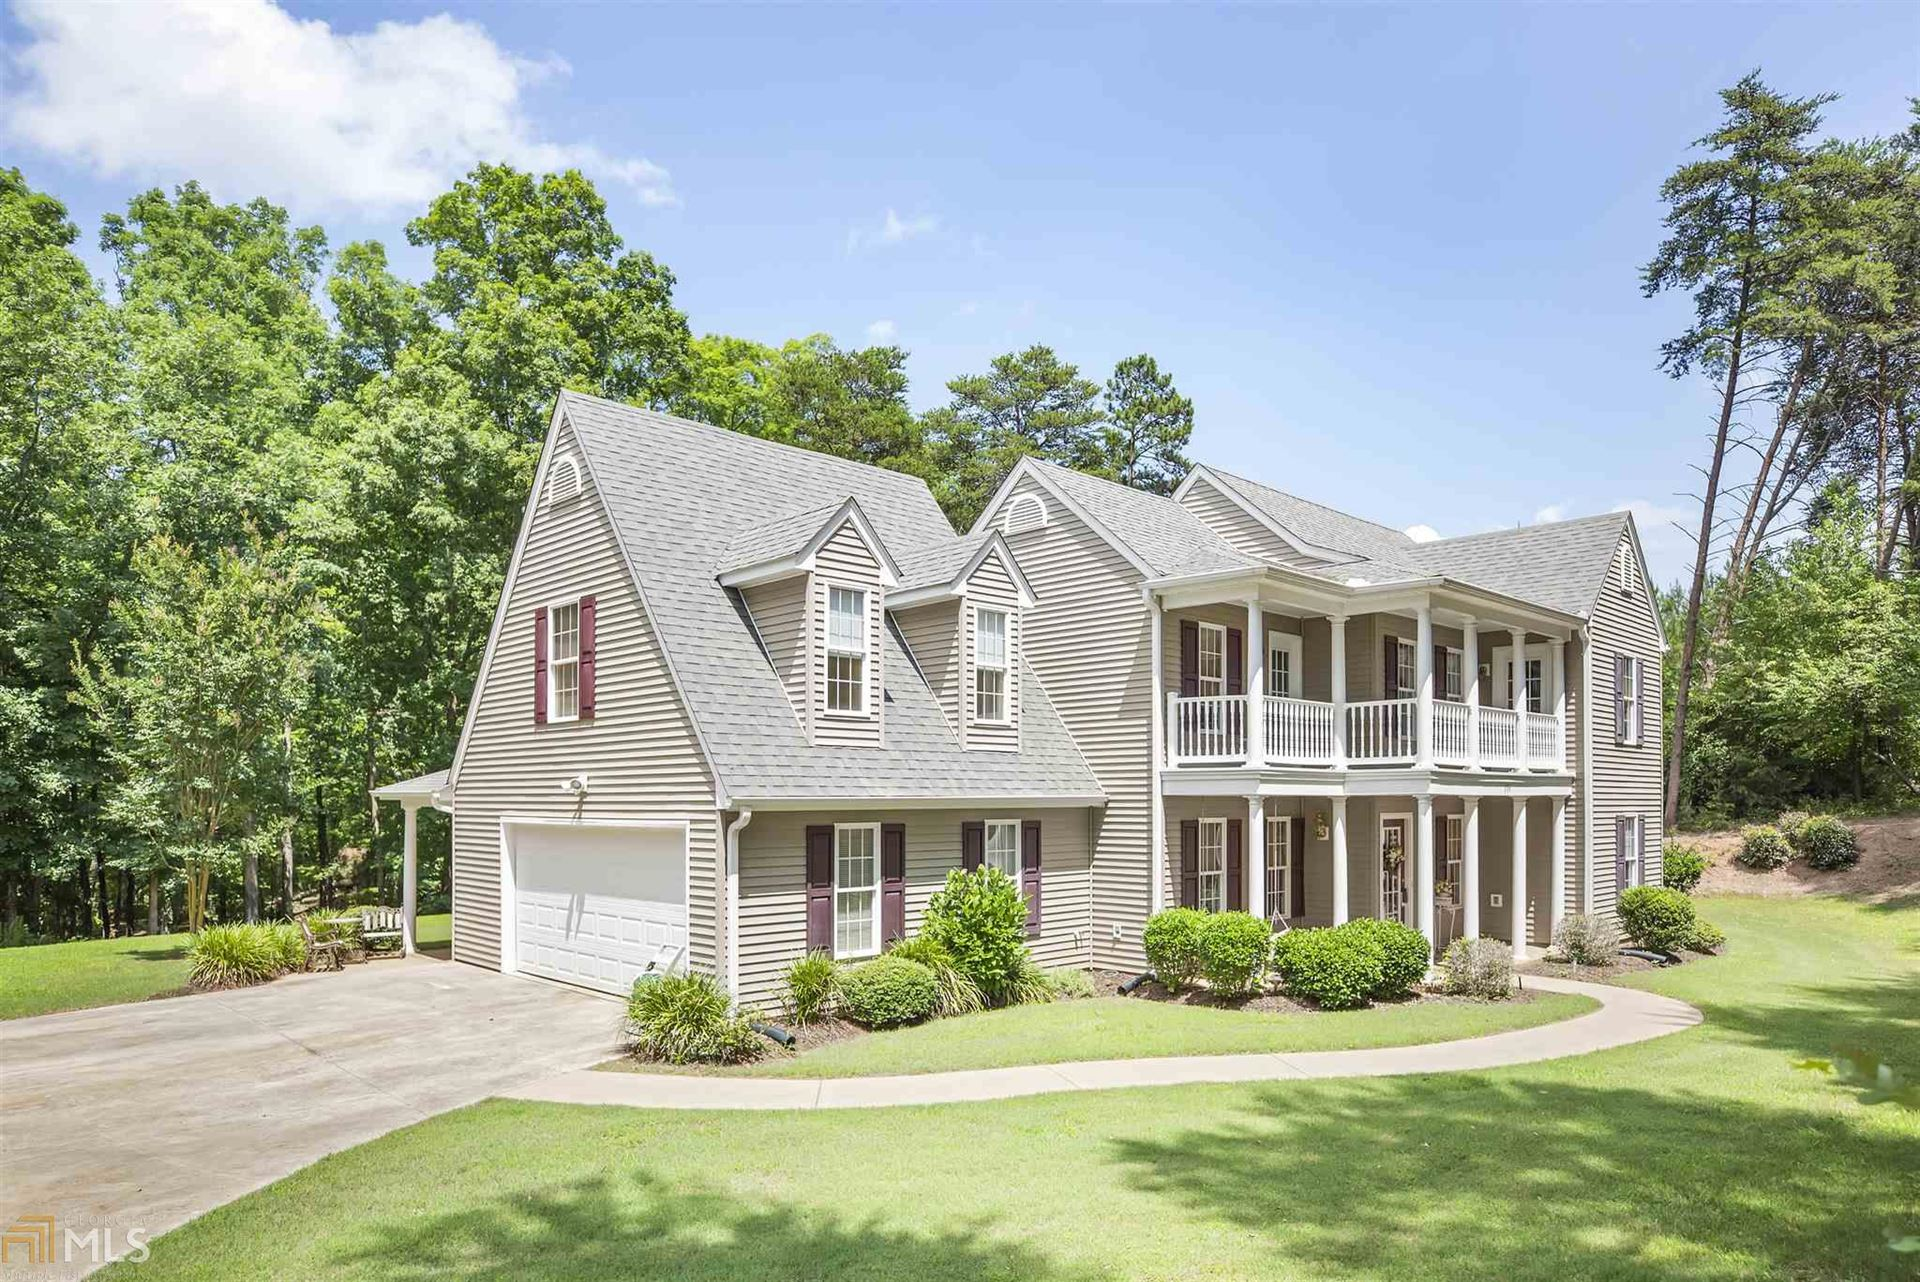 118 Lakepoint Dr, Anderson, SC 29626 - MLS#: 8731969